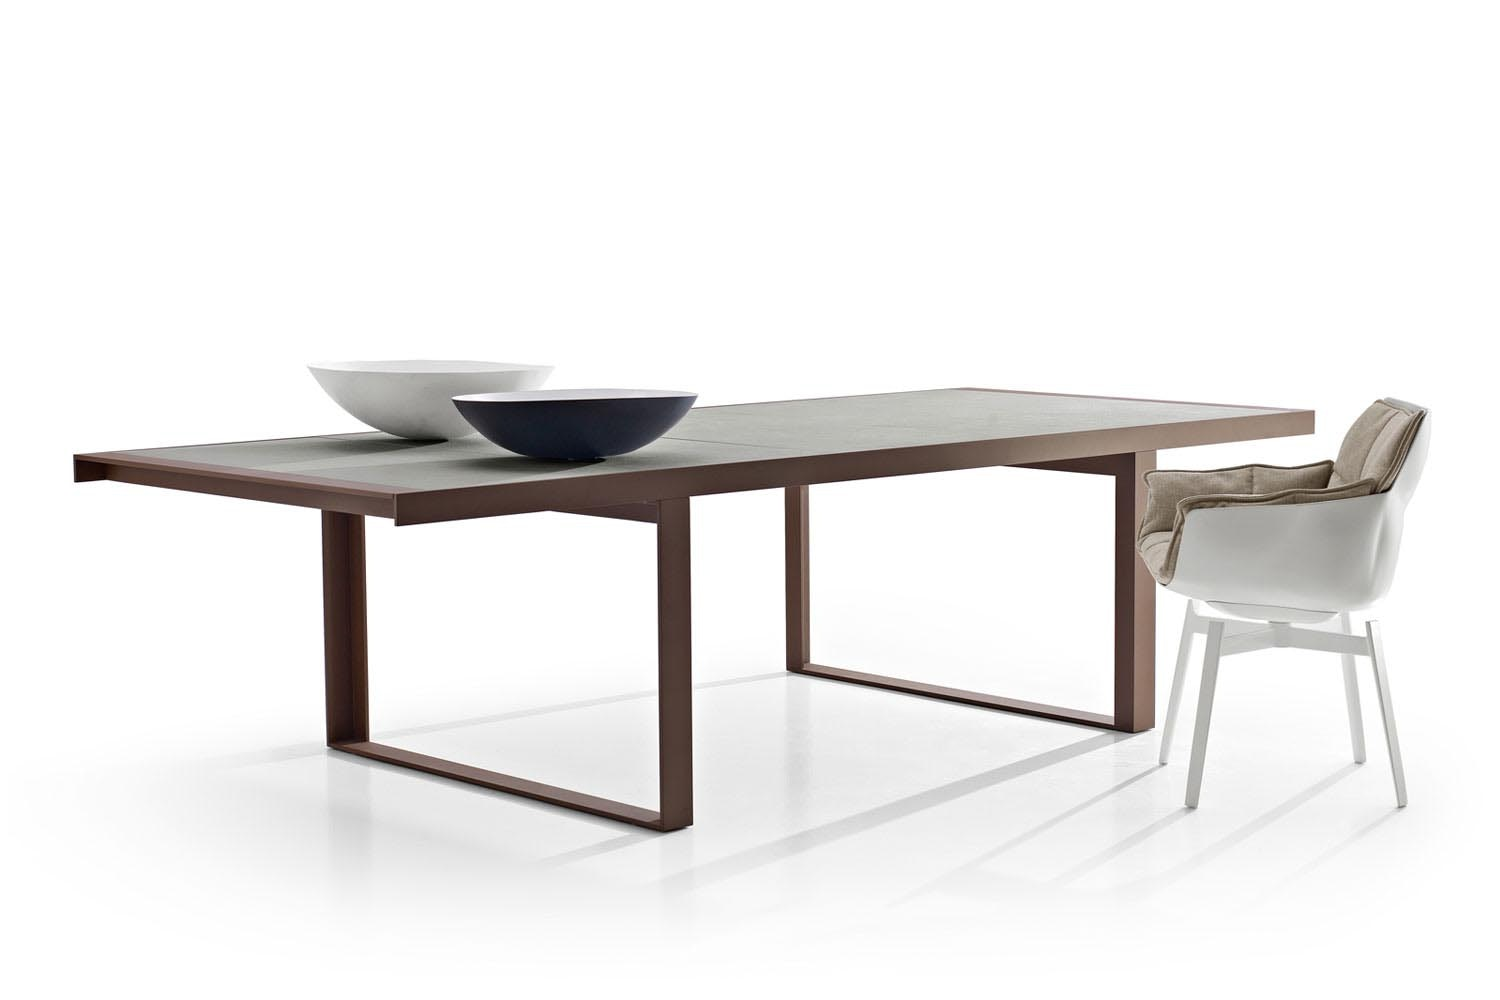 Canasta '13 Table by Patricia Urquiola for B&B Italia